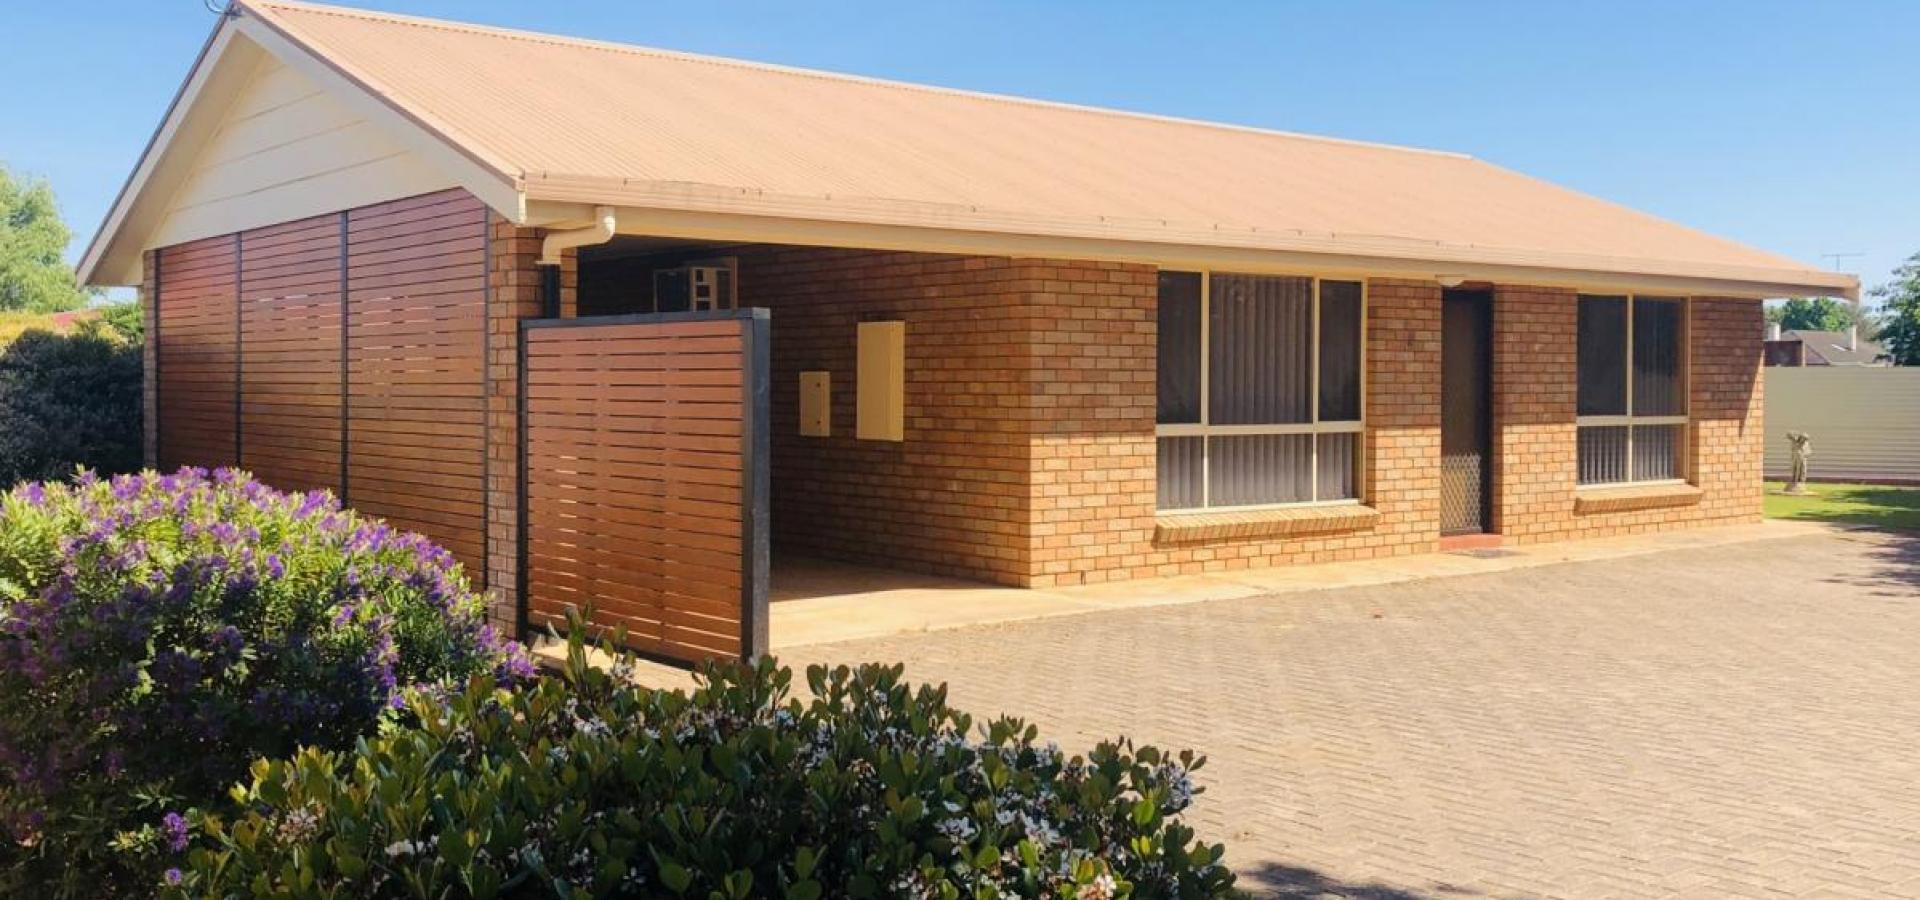 Fantastic investment opportunity in the heart of Penola